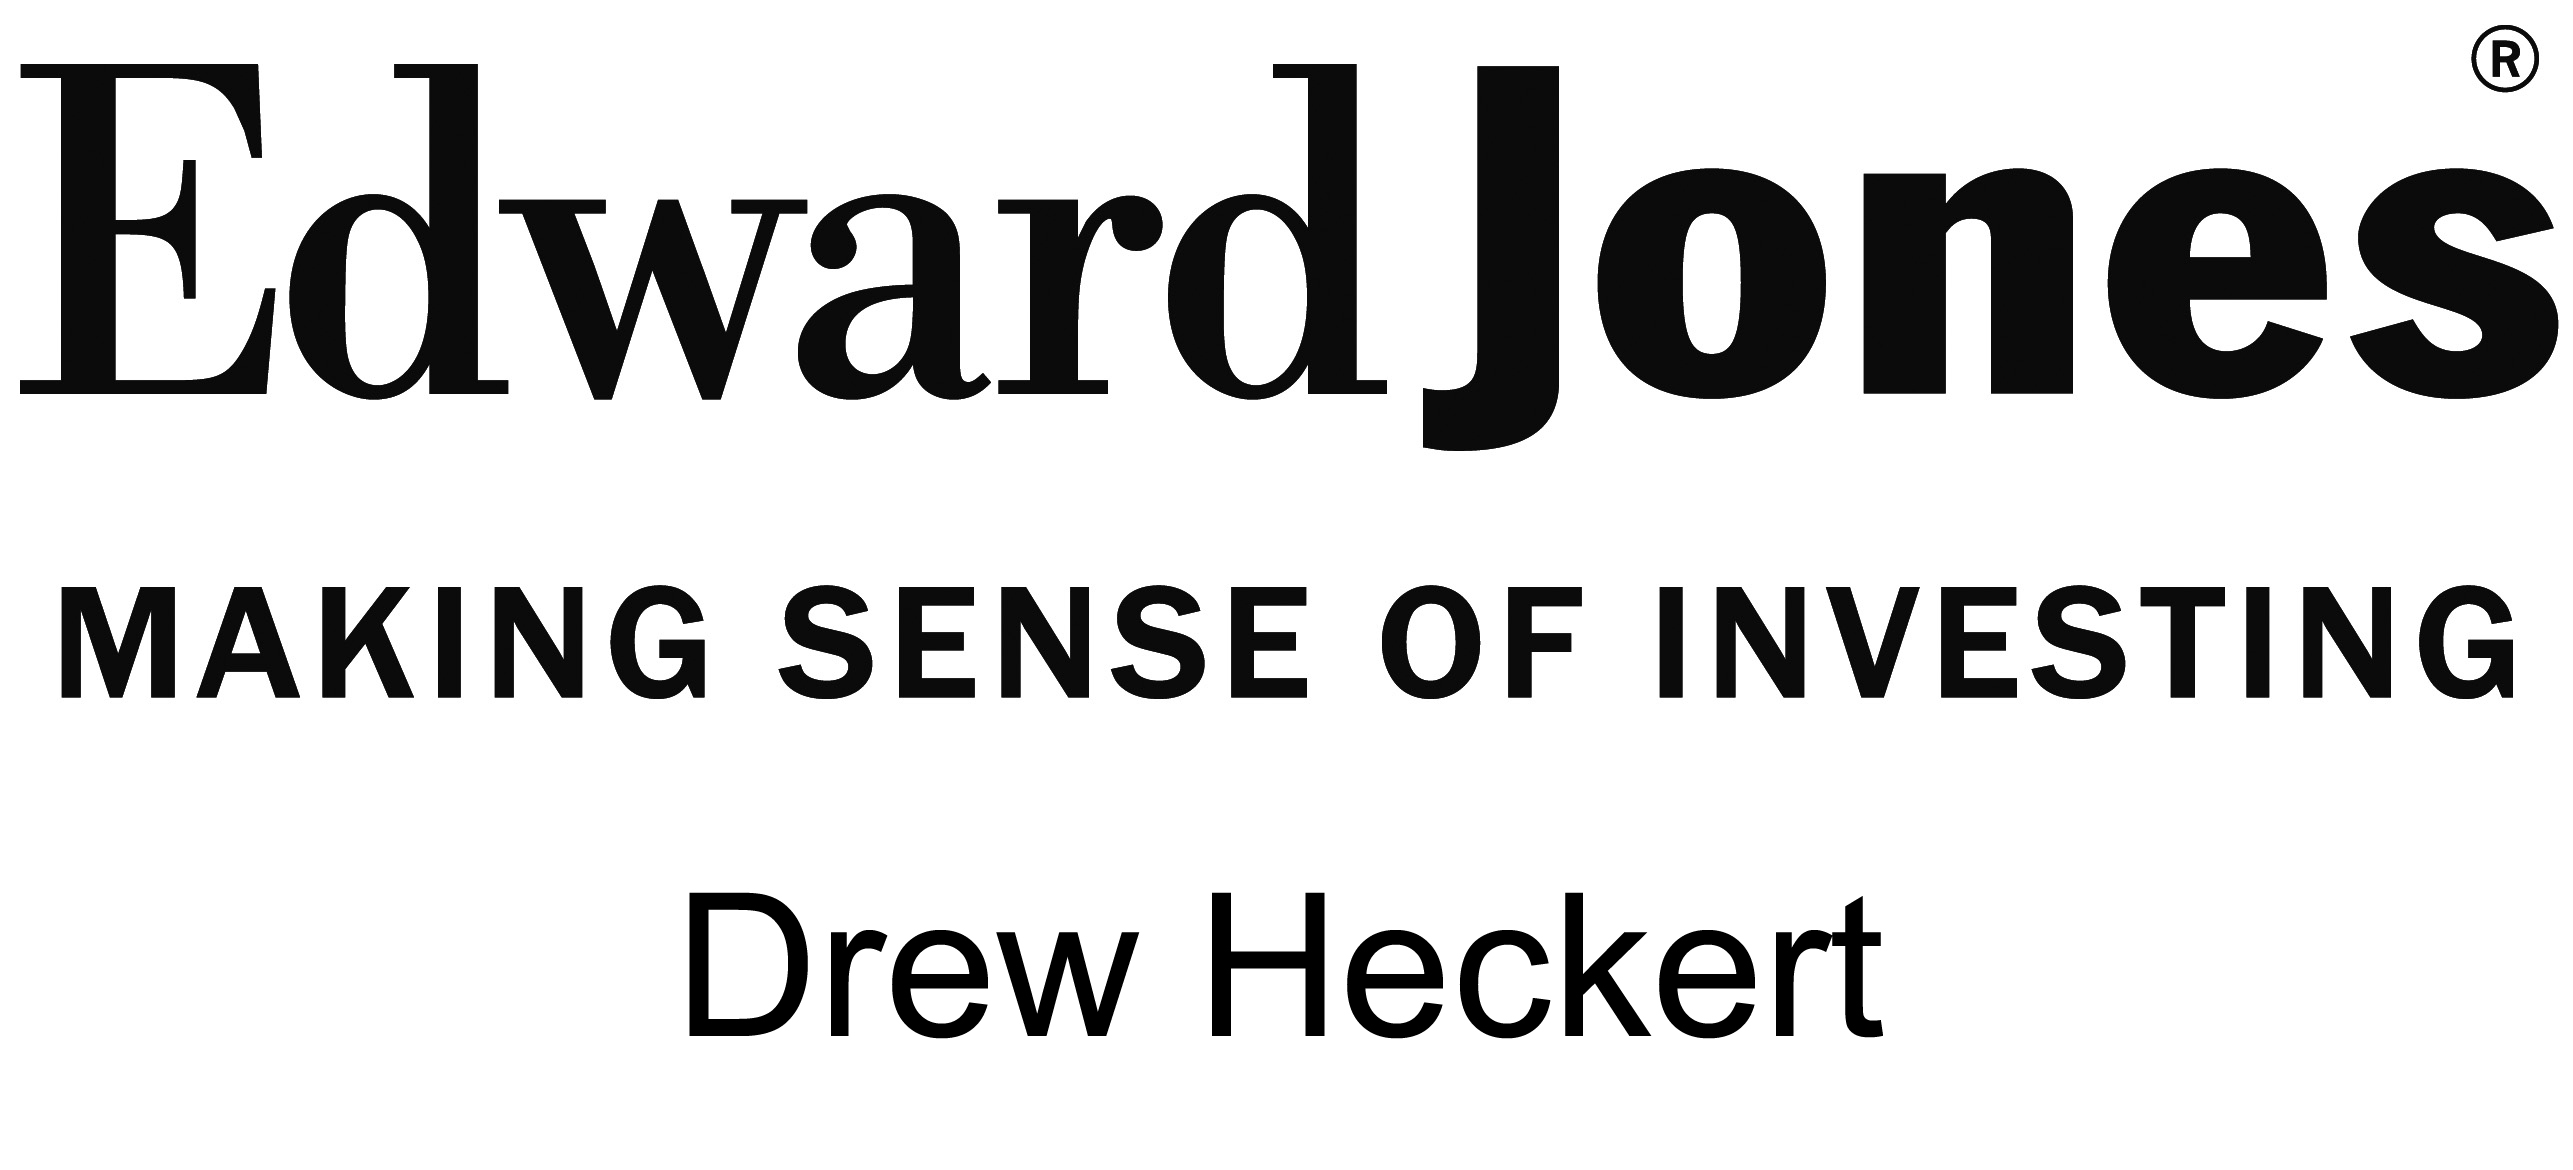 Edward Jones - Drew Heckert